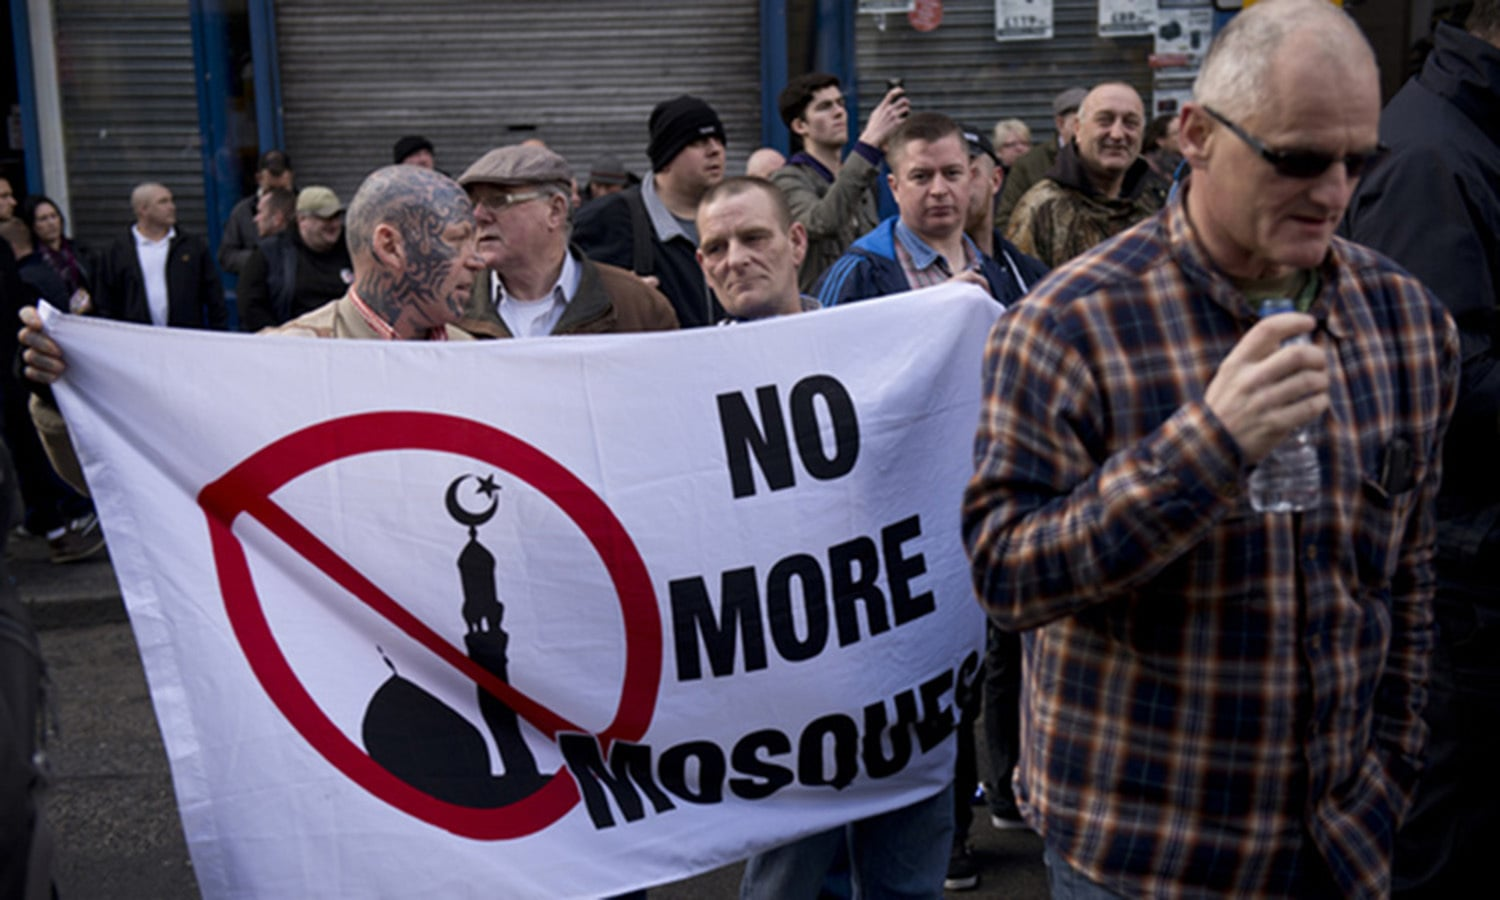 Islamophobia is not just an issue in the US. This 2015 photo shows an anti-Muslim demonstration in Northern England.—AFP